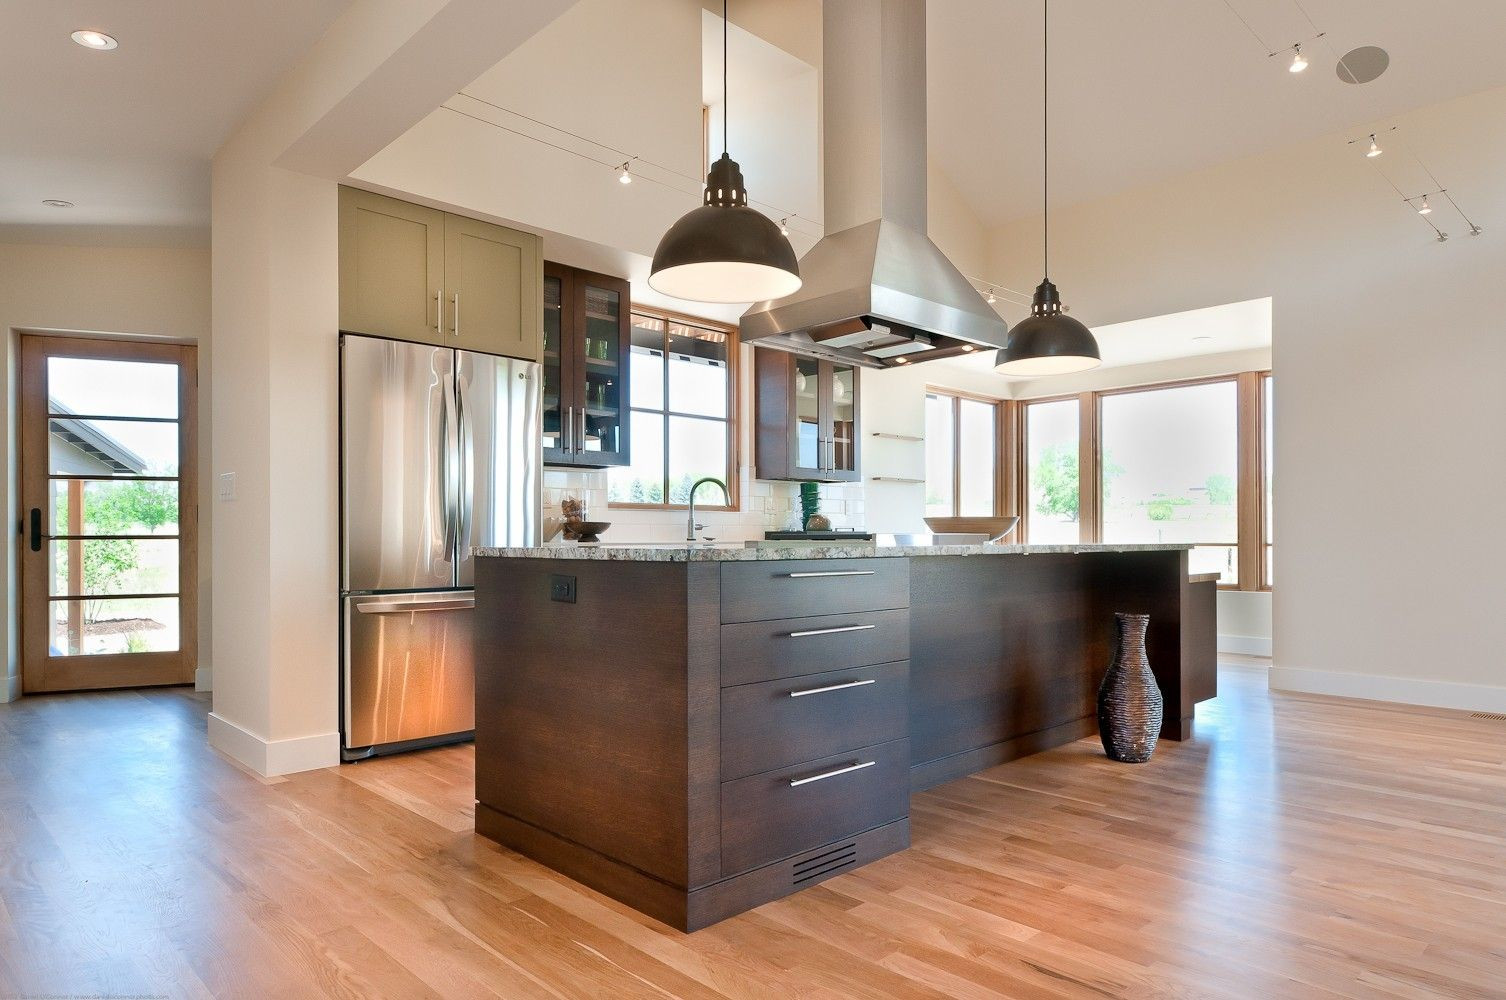 hardwood flooring mallet of pride flooring and home decor blue ridge hardwood flooring hickory inside custom modern farmhouse kitchen by marc hunter woodworking